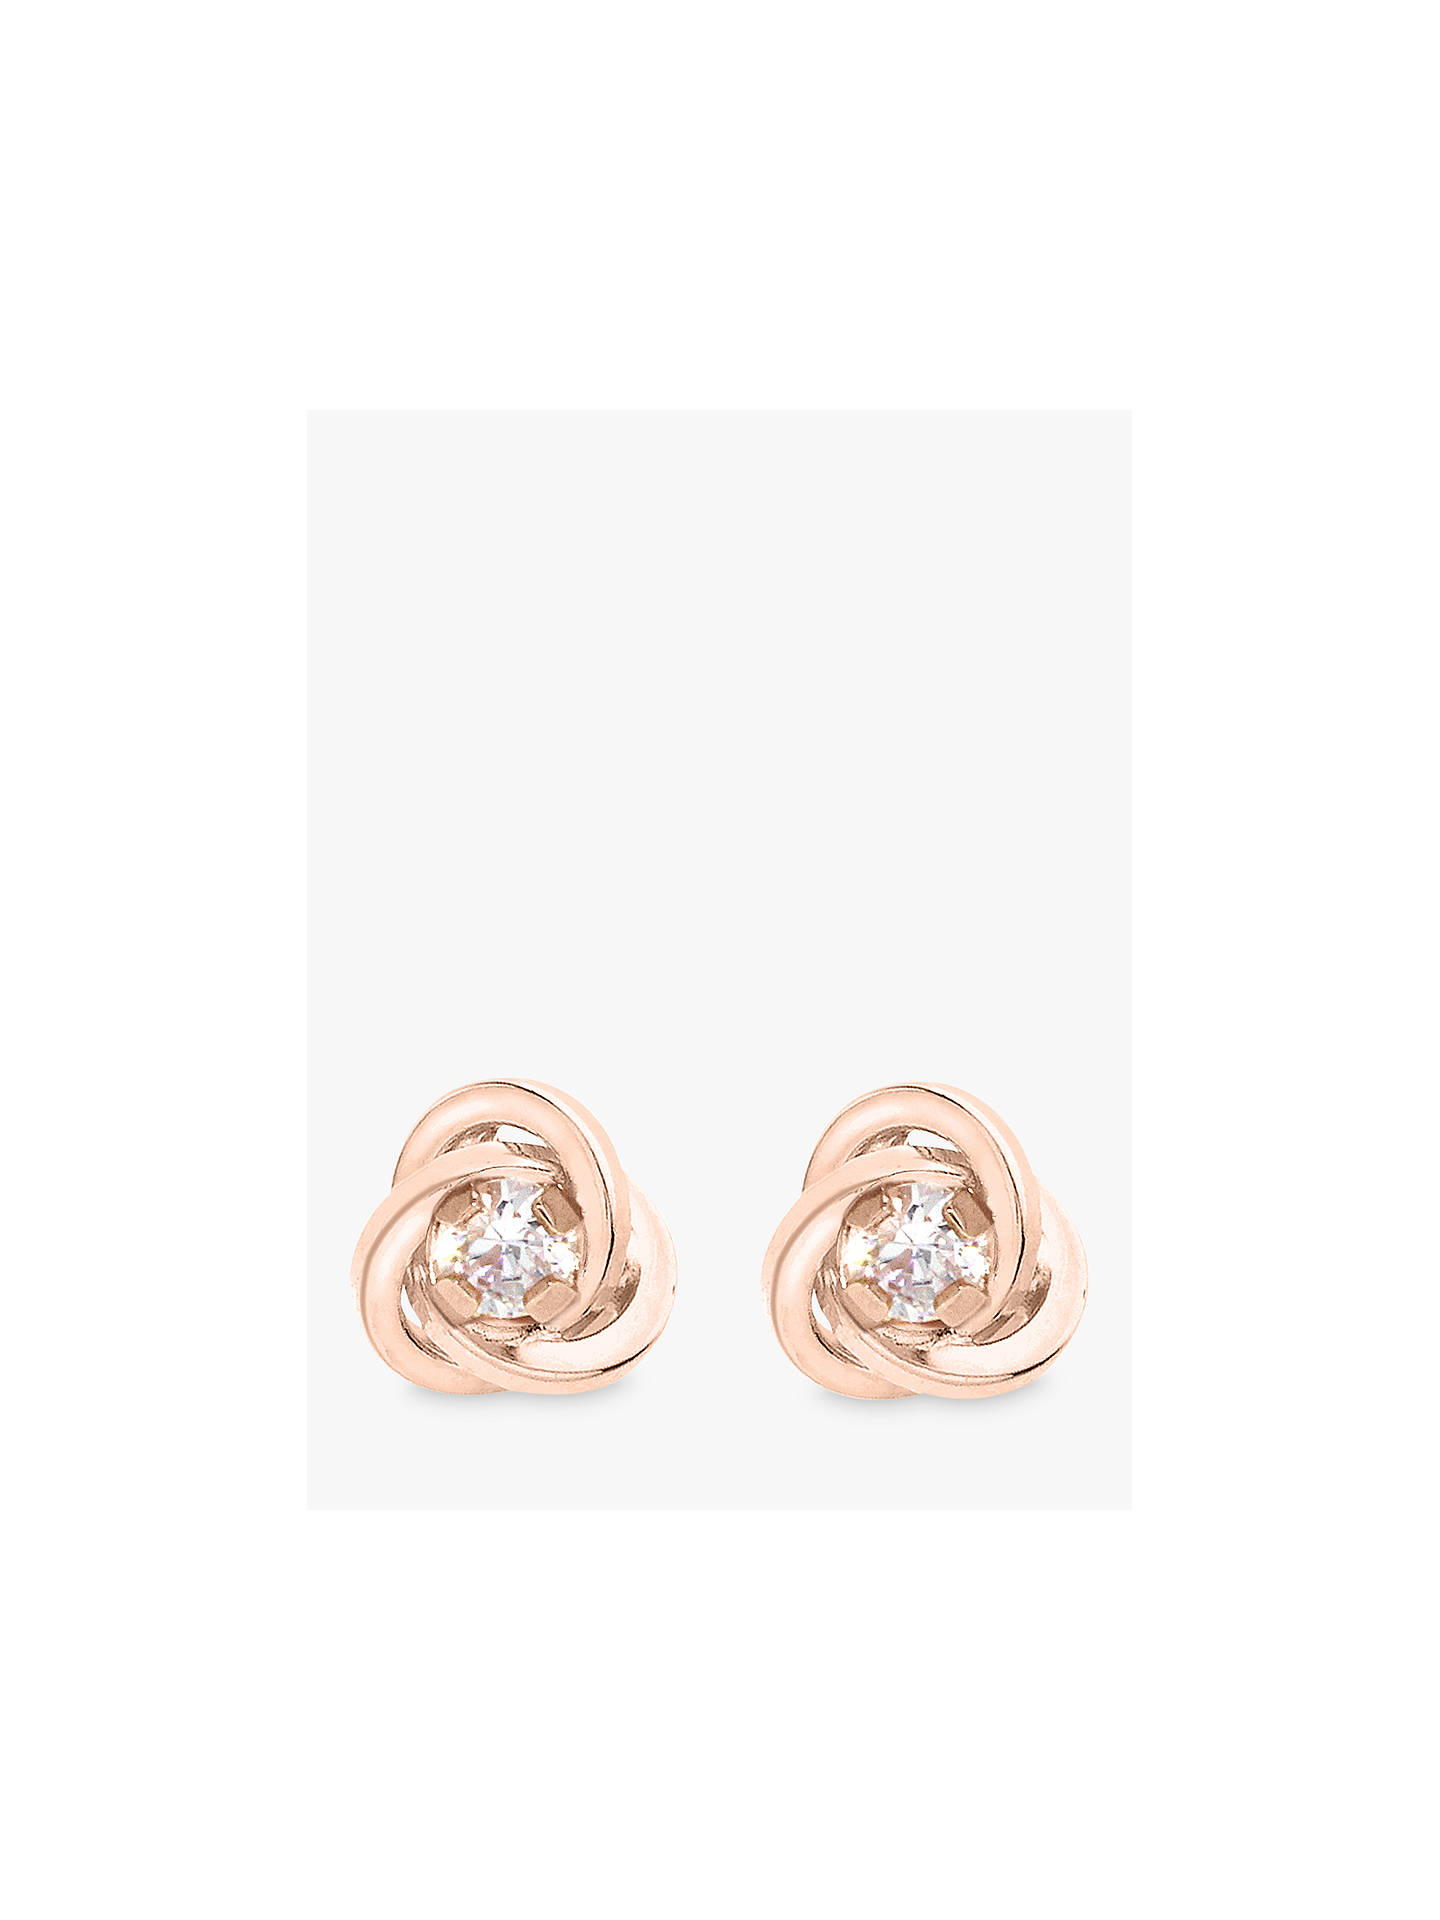 Ibb 9ct Gold Knot Stud Earrings Rose Online At Johnlewis